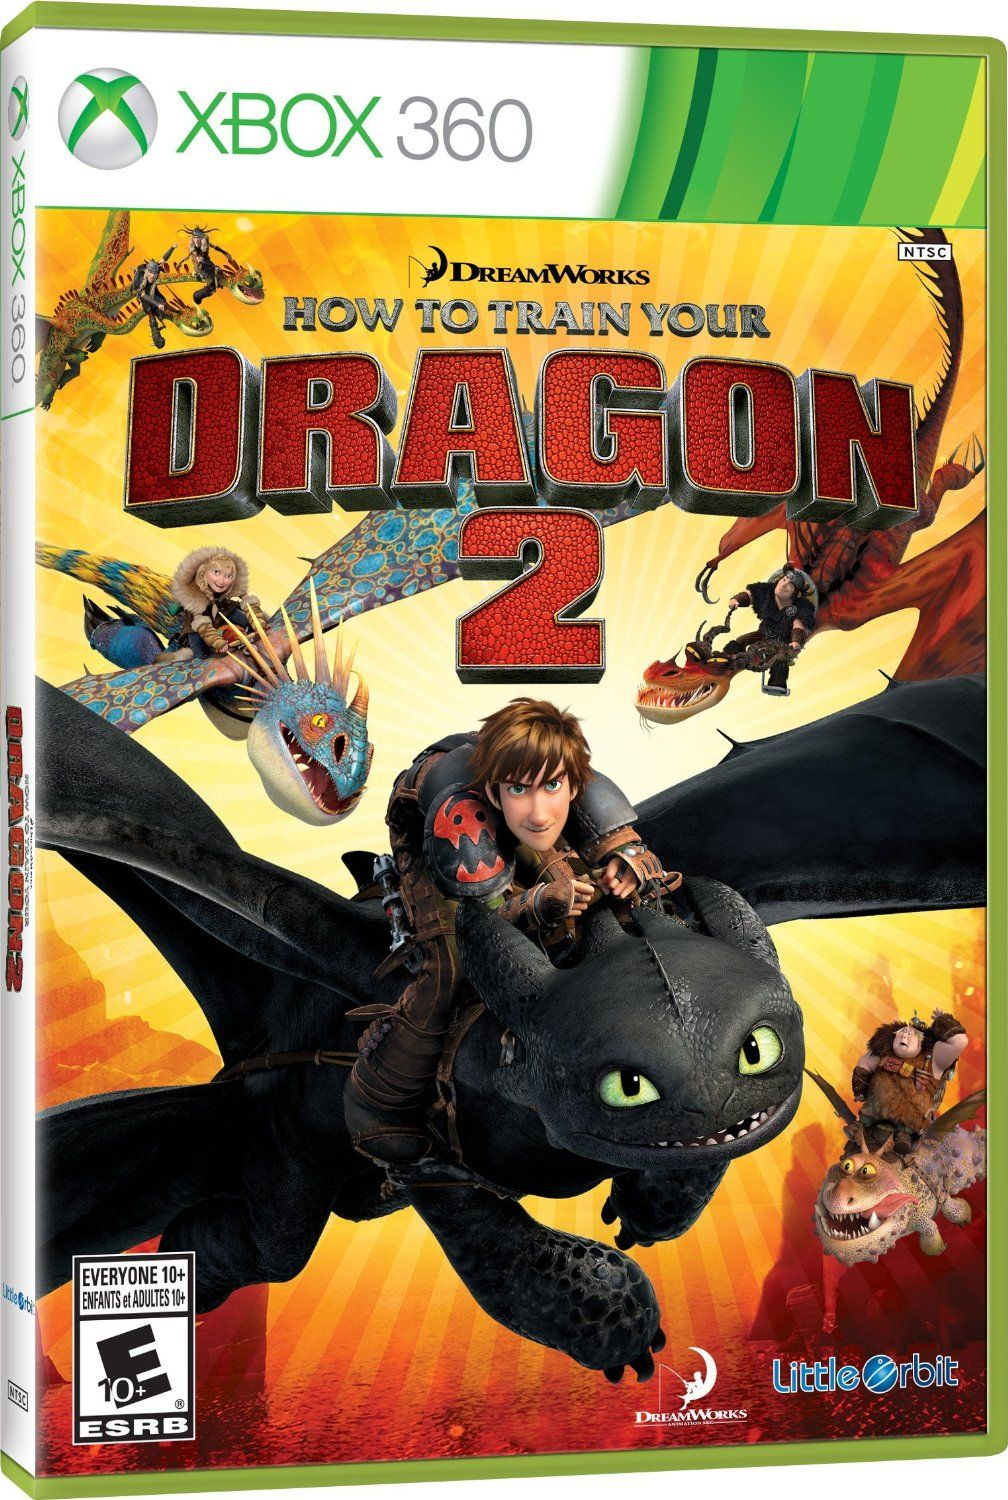 How To Train Your Dragon 2 Video Games Pinterest Dibujos Xbox